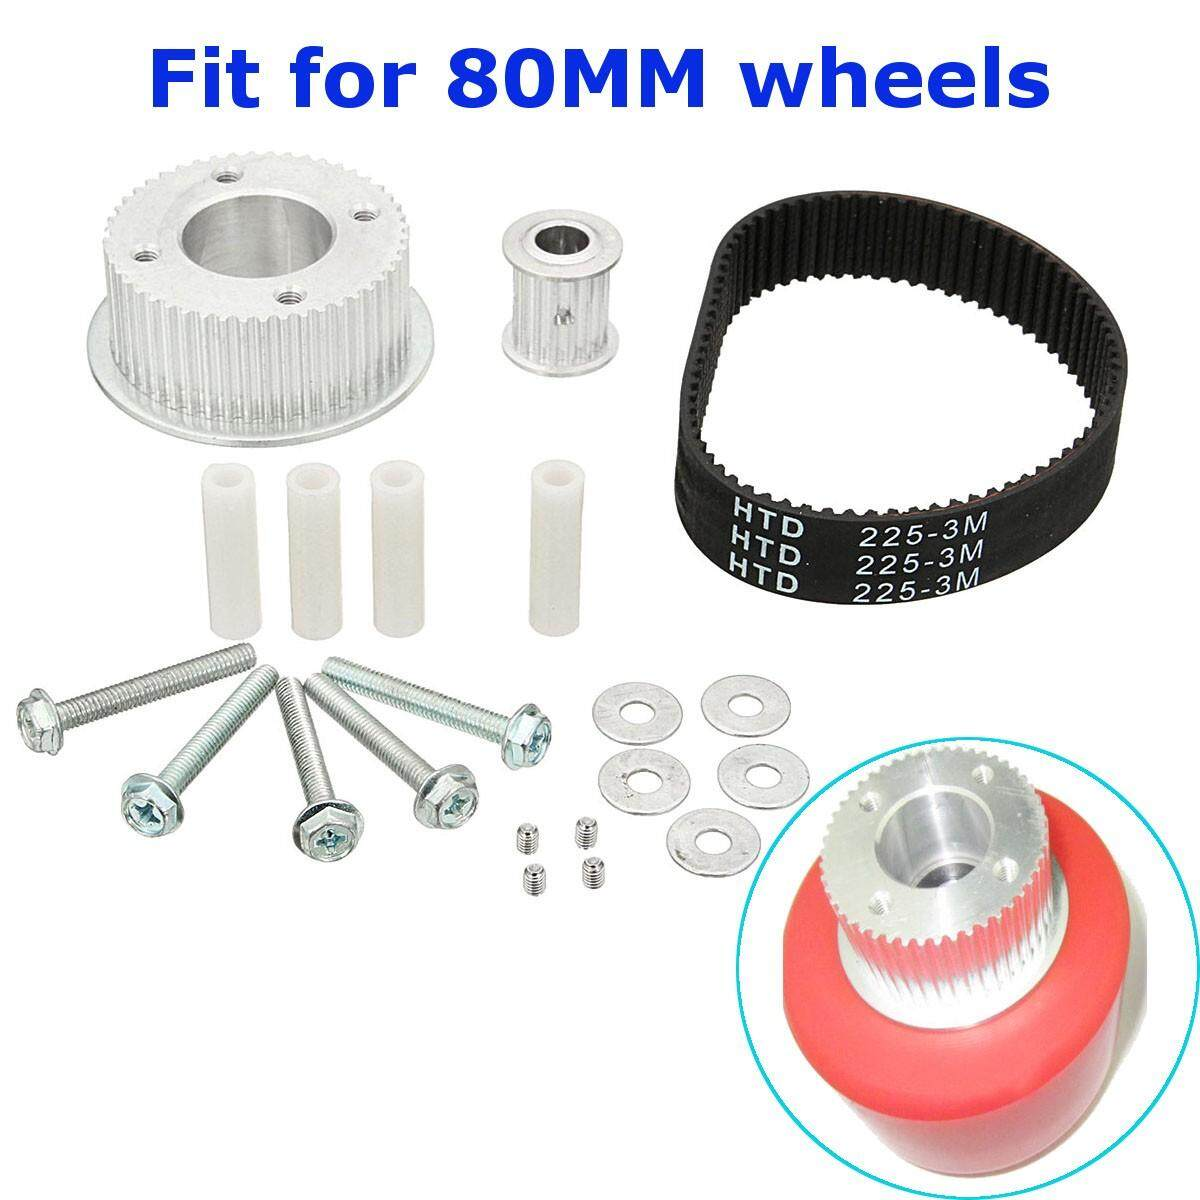 Drive Kit Parts Pulley And Motor Mount For 80MM Wheels Electric Skateboard